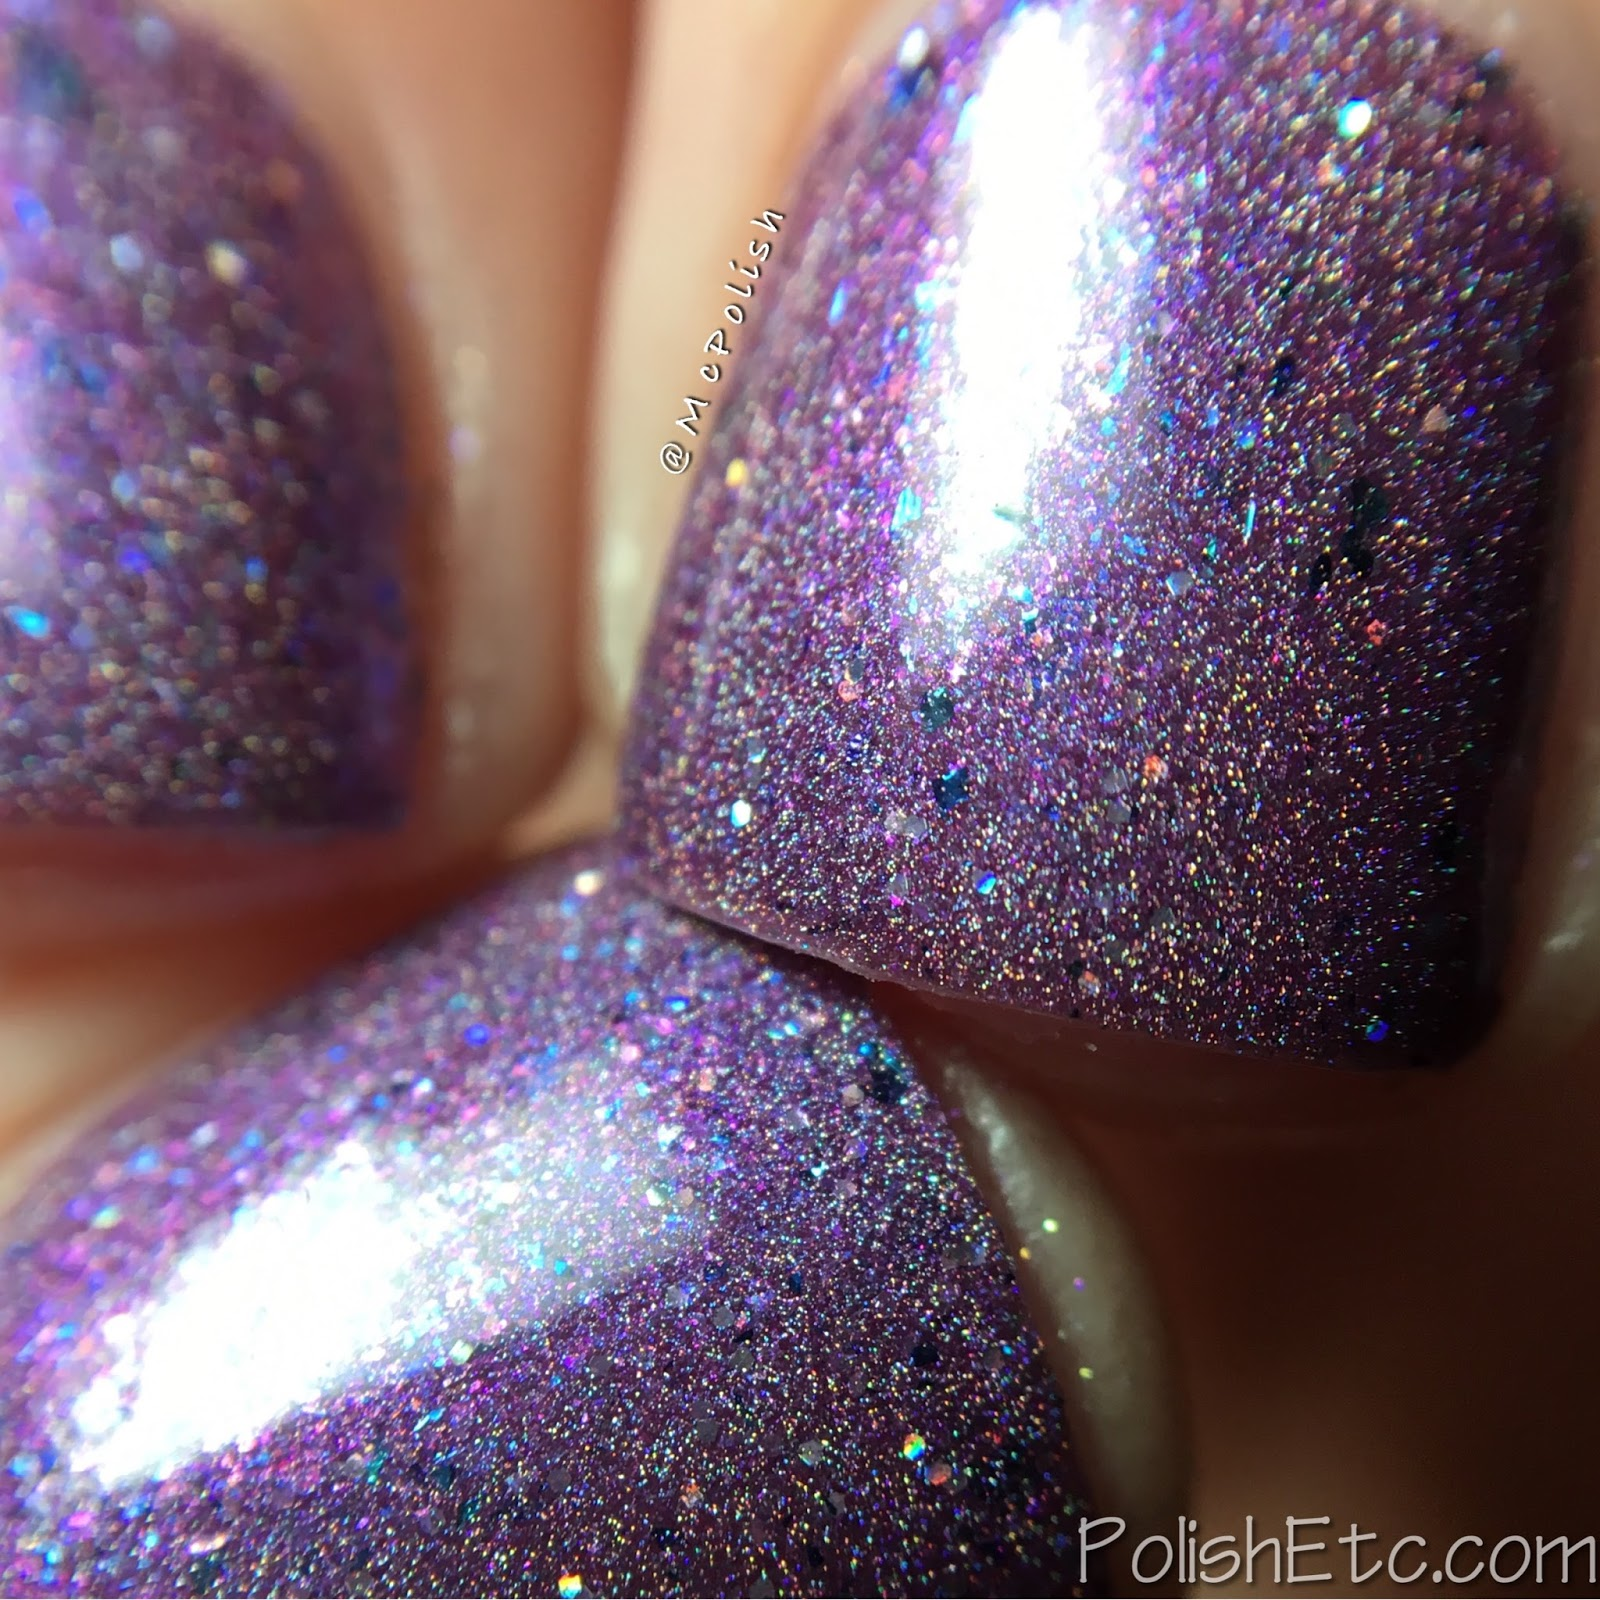 Indies Outside the Box: Fan-tastic Customs - McPolish - Freeze Frame by Girly Bits Cosmetics